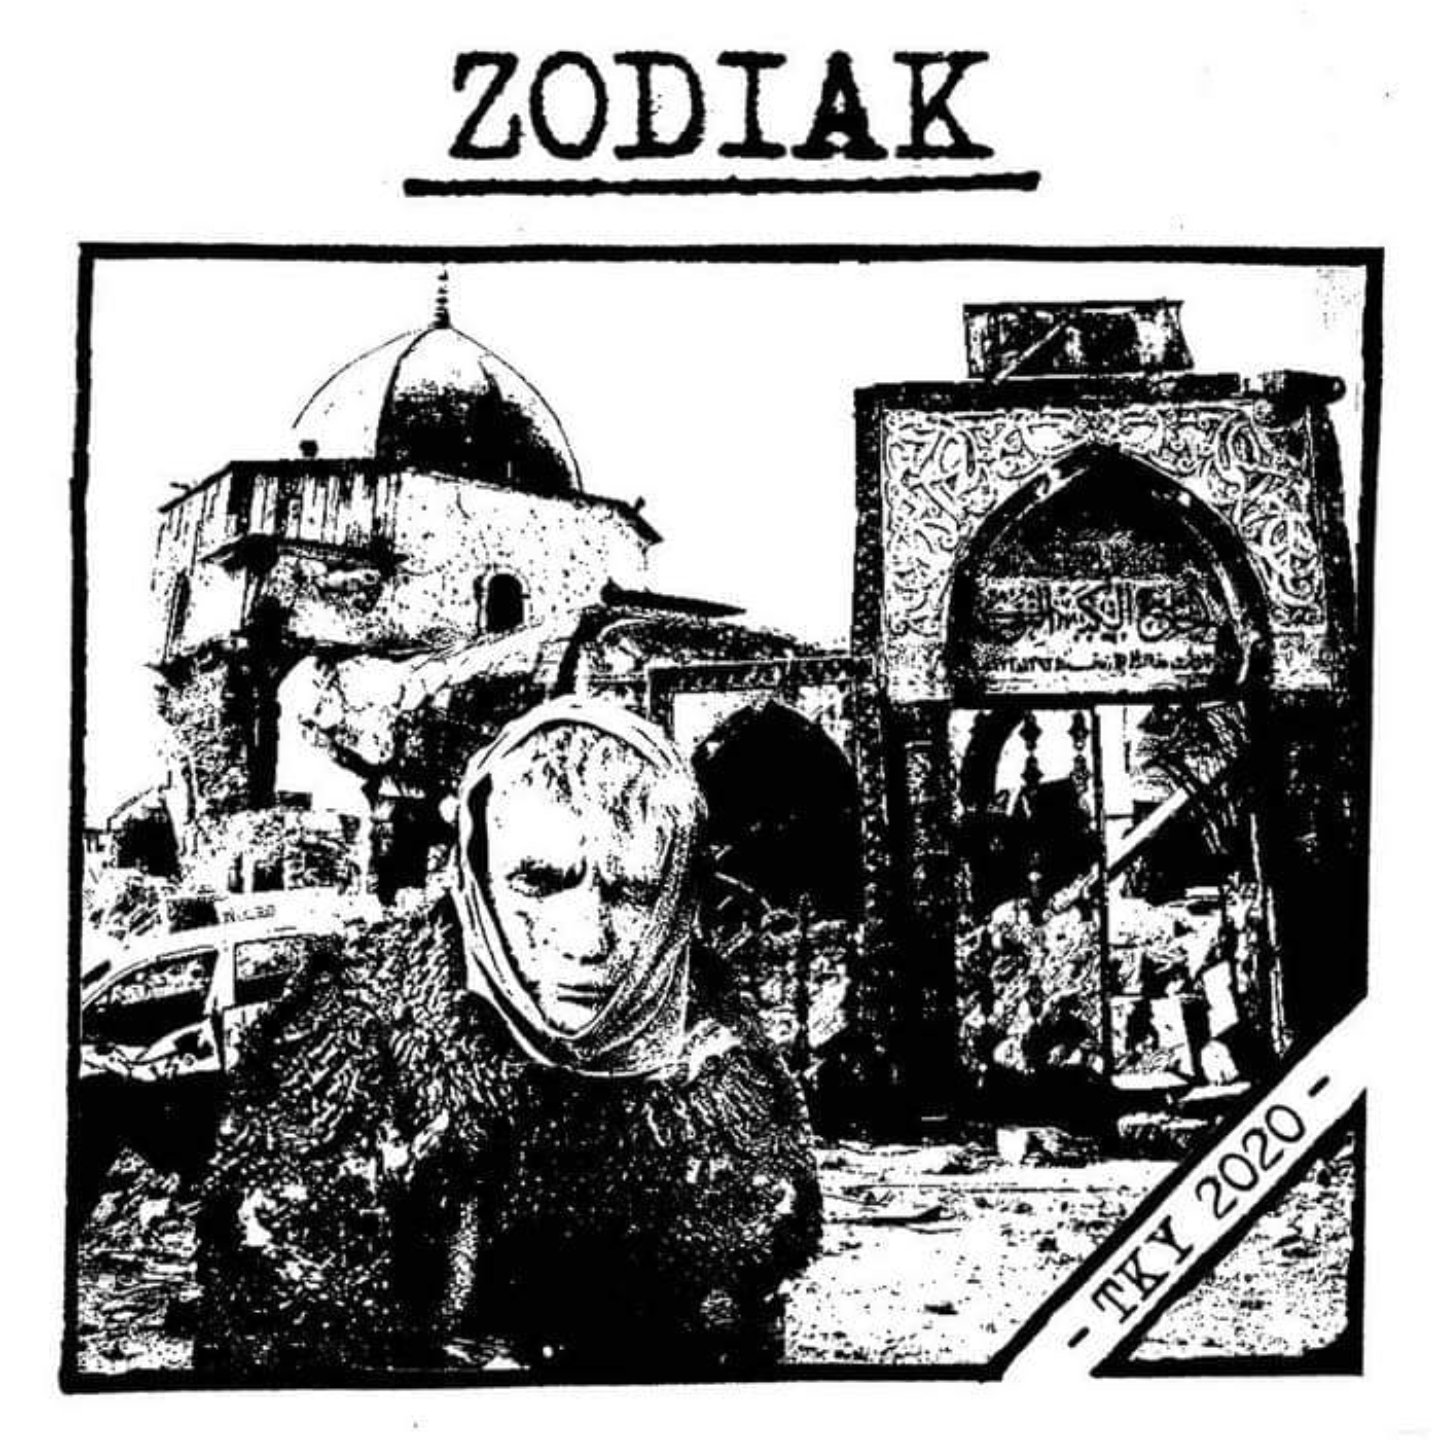 ZODIAK - TKY 2020 Flexi 7